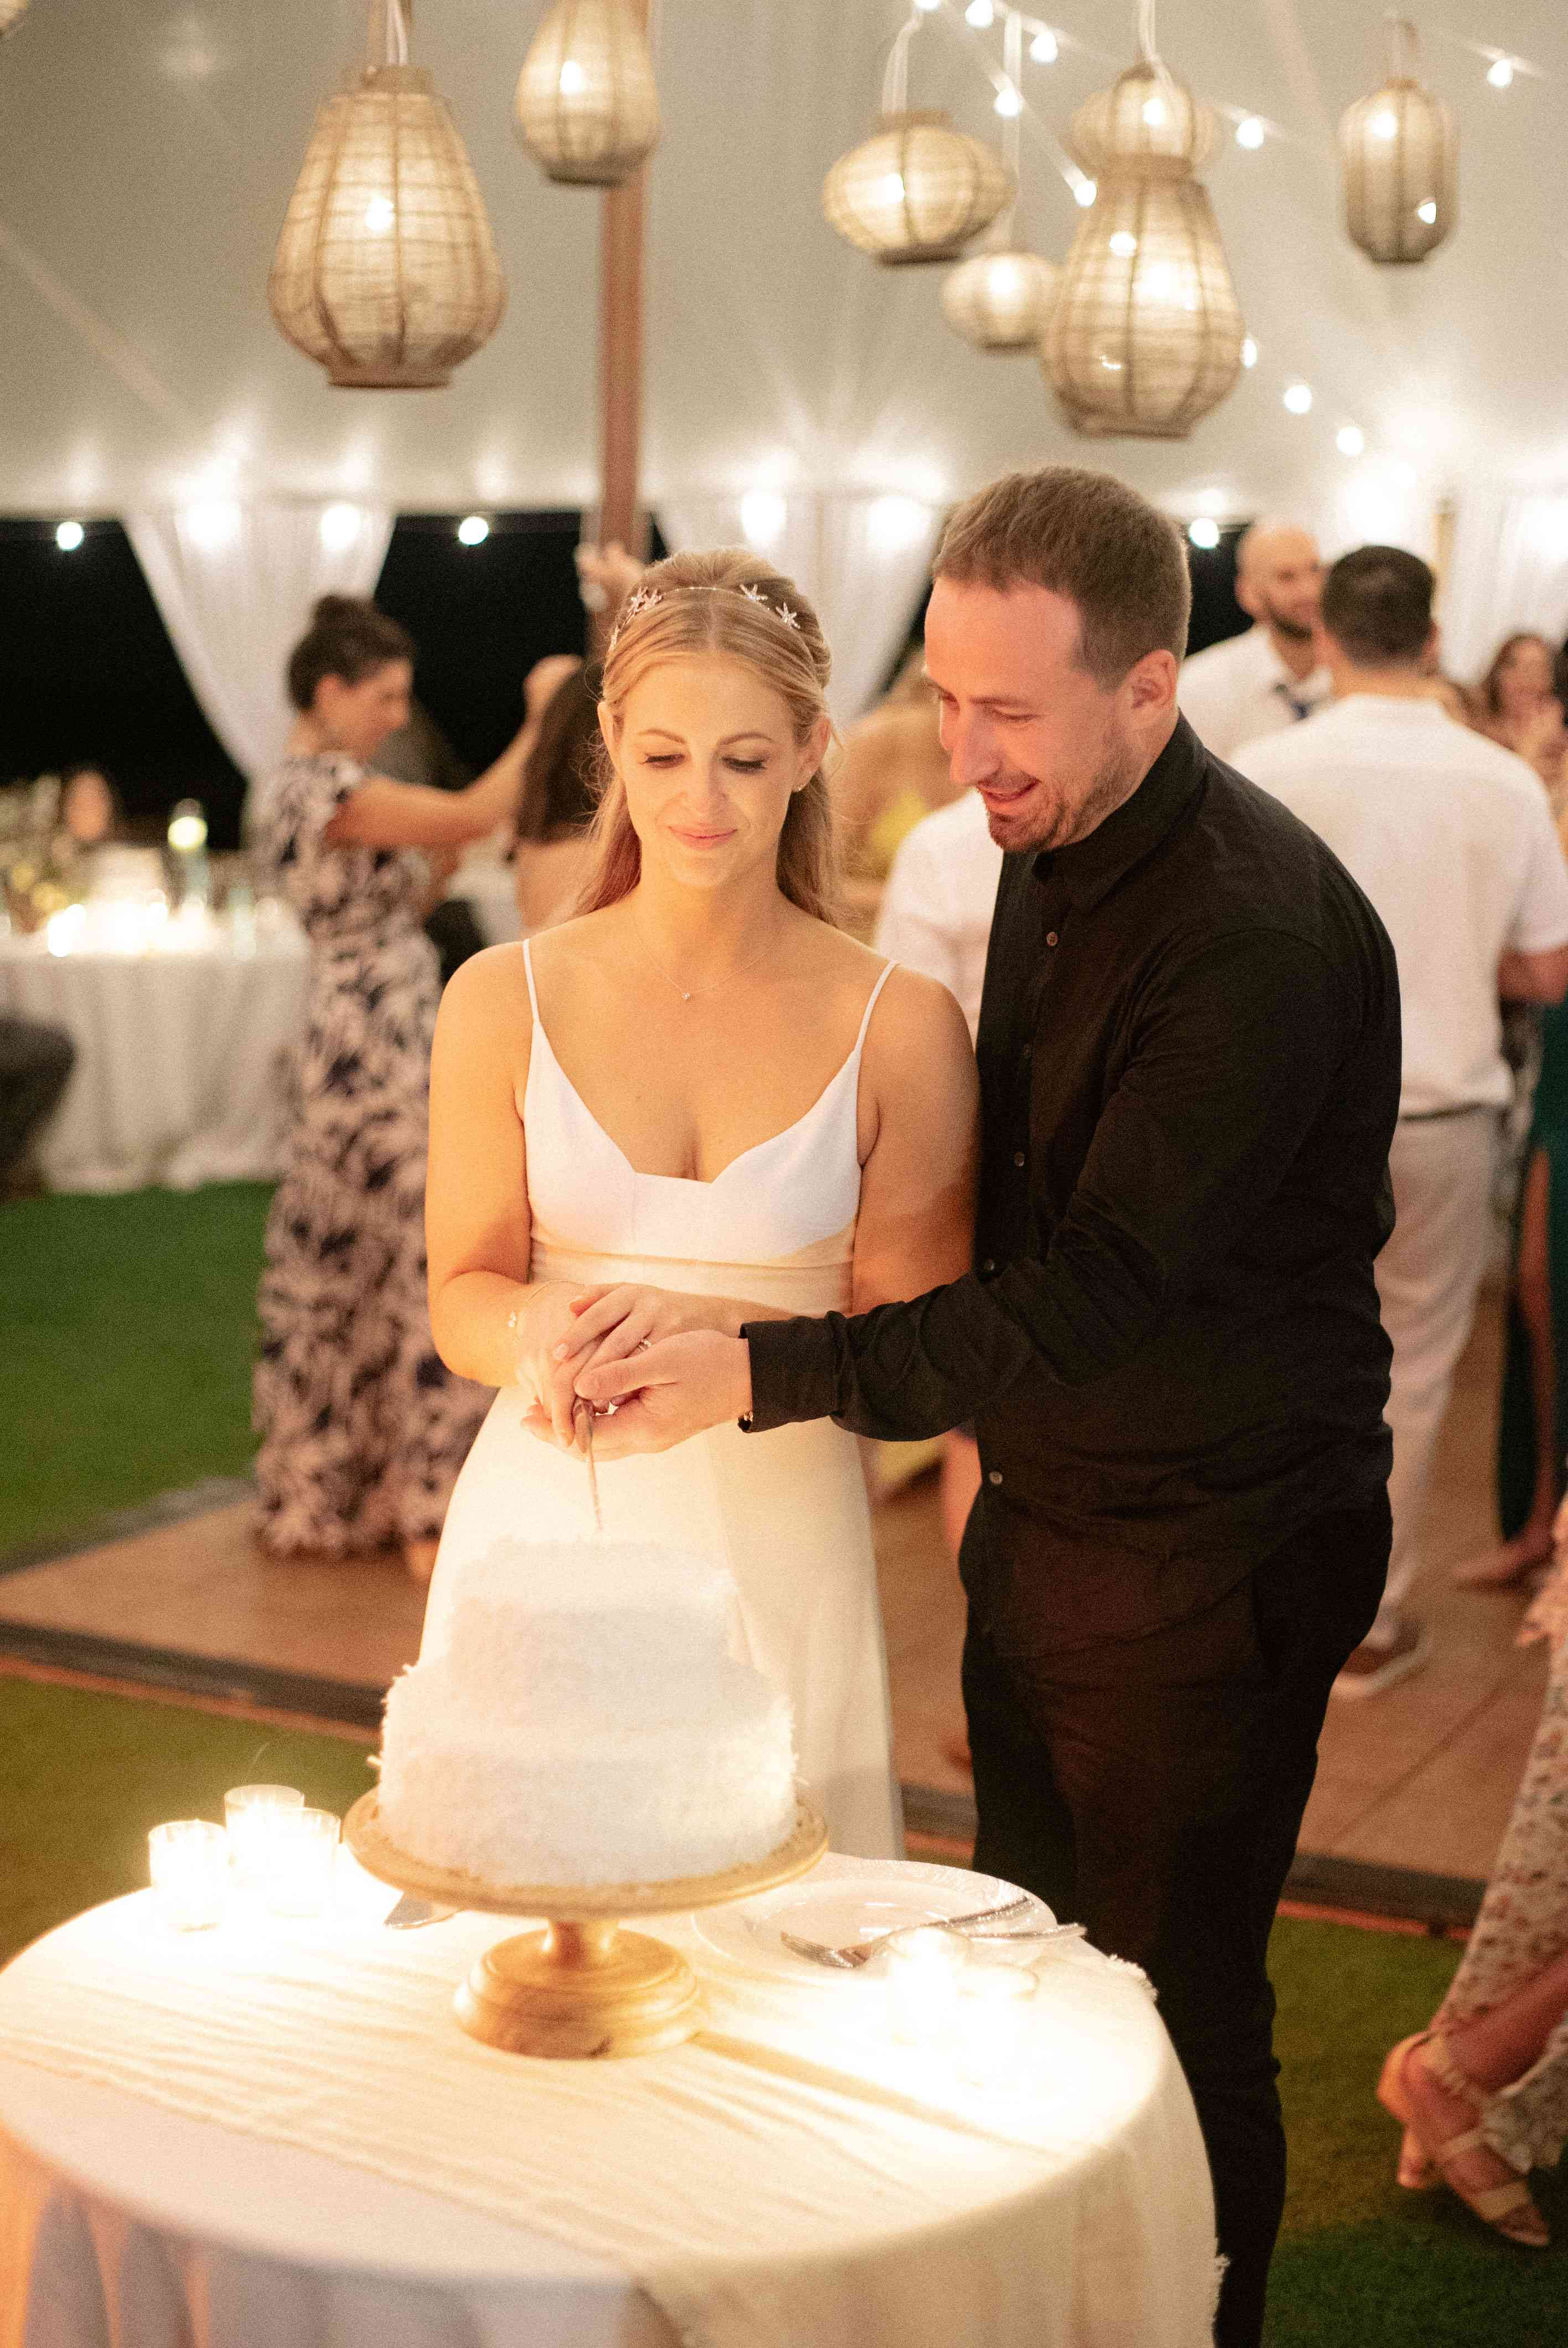 The couple cuts their wedding cake